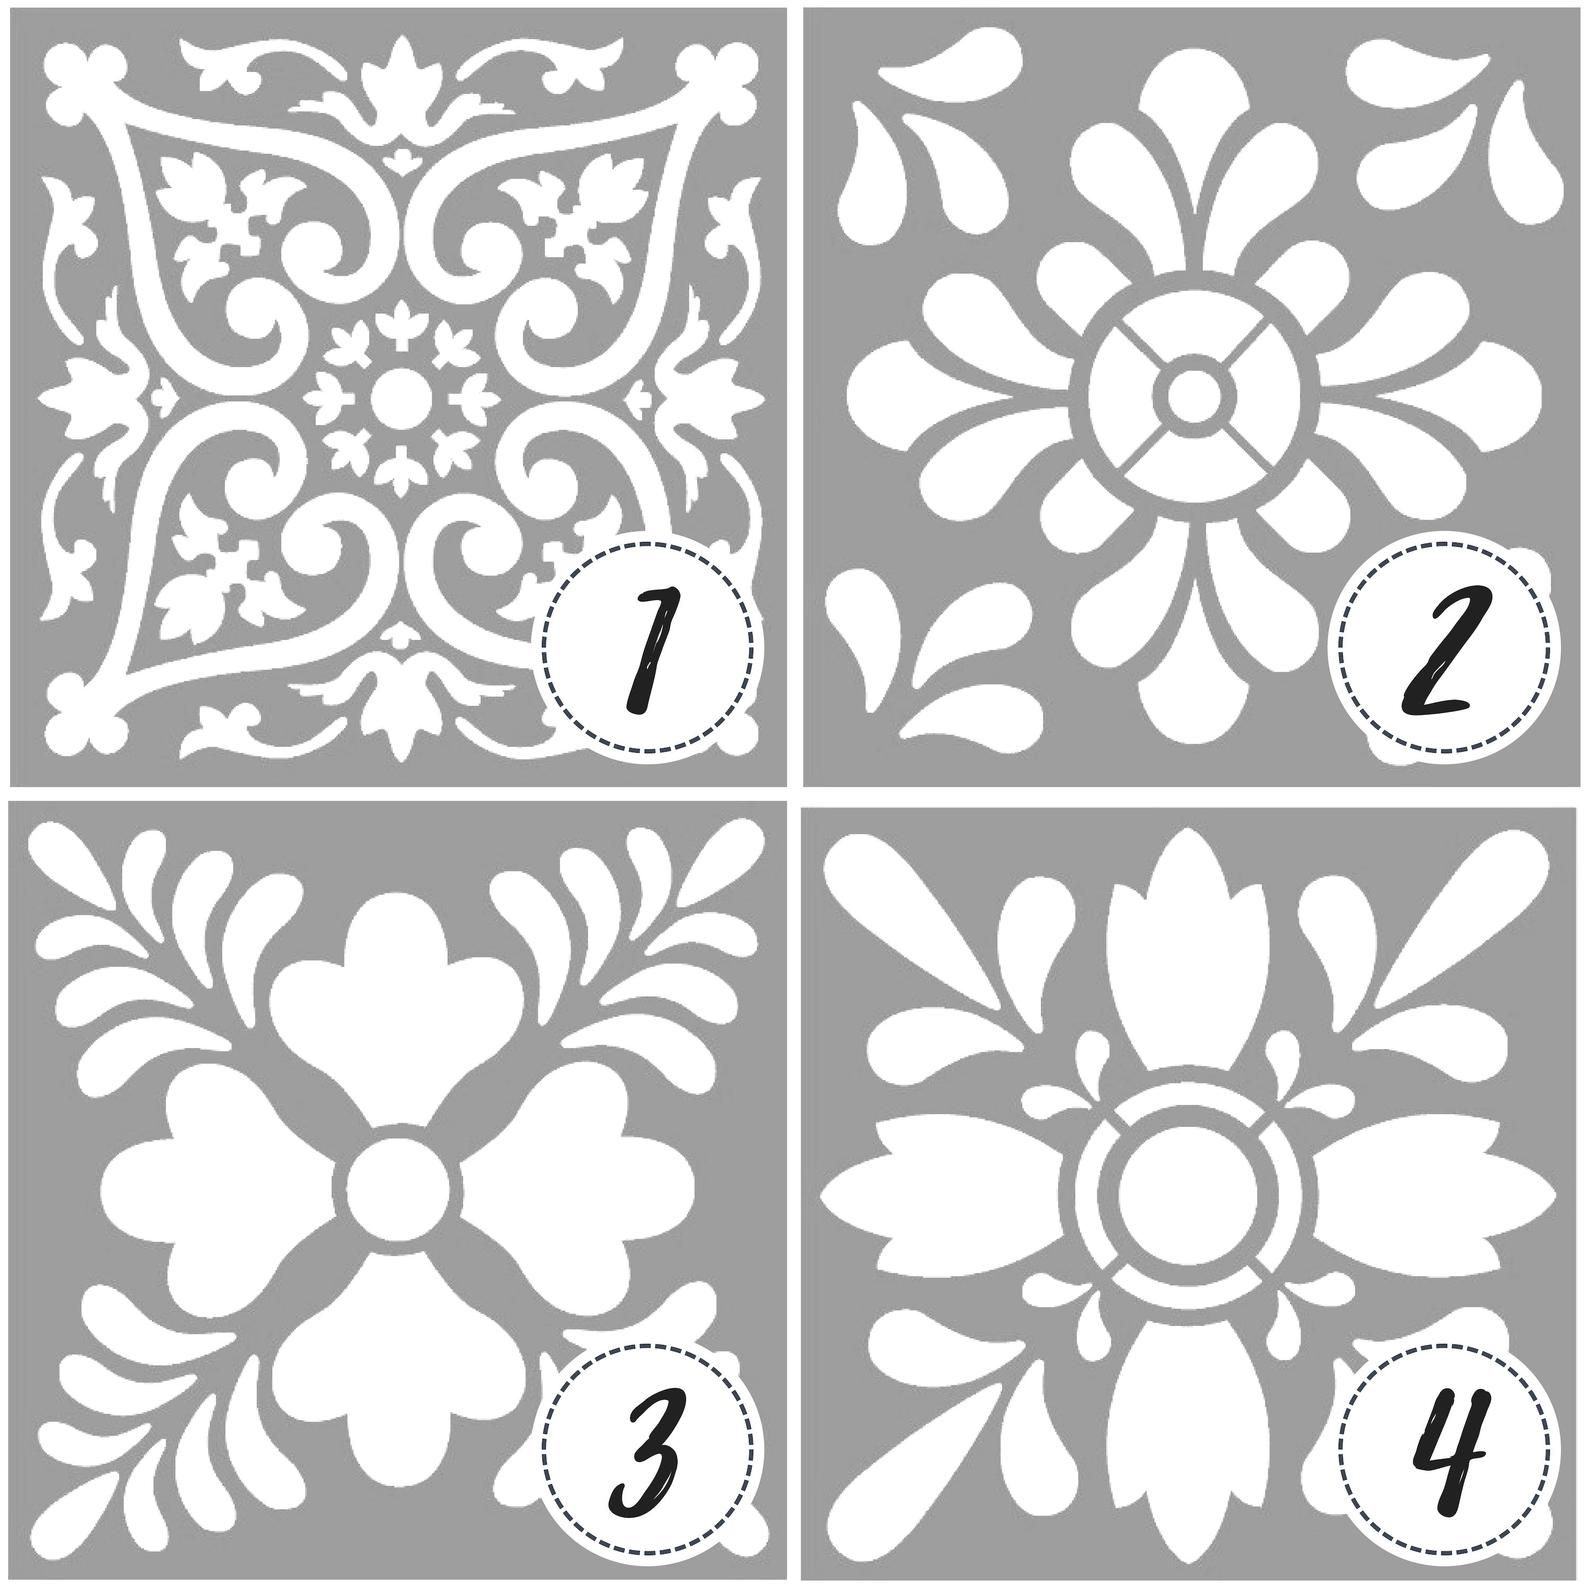 Template Or Stencil With Tile Designs And Mandalas Tile Stencil Mandala Painting Stencil For Paint In 2021 Stencil Painting Mandala Stencils Stencil Printing